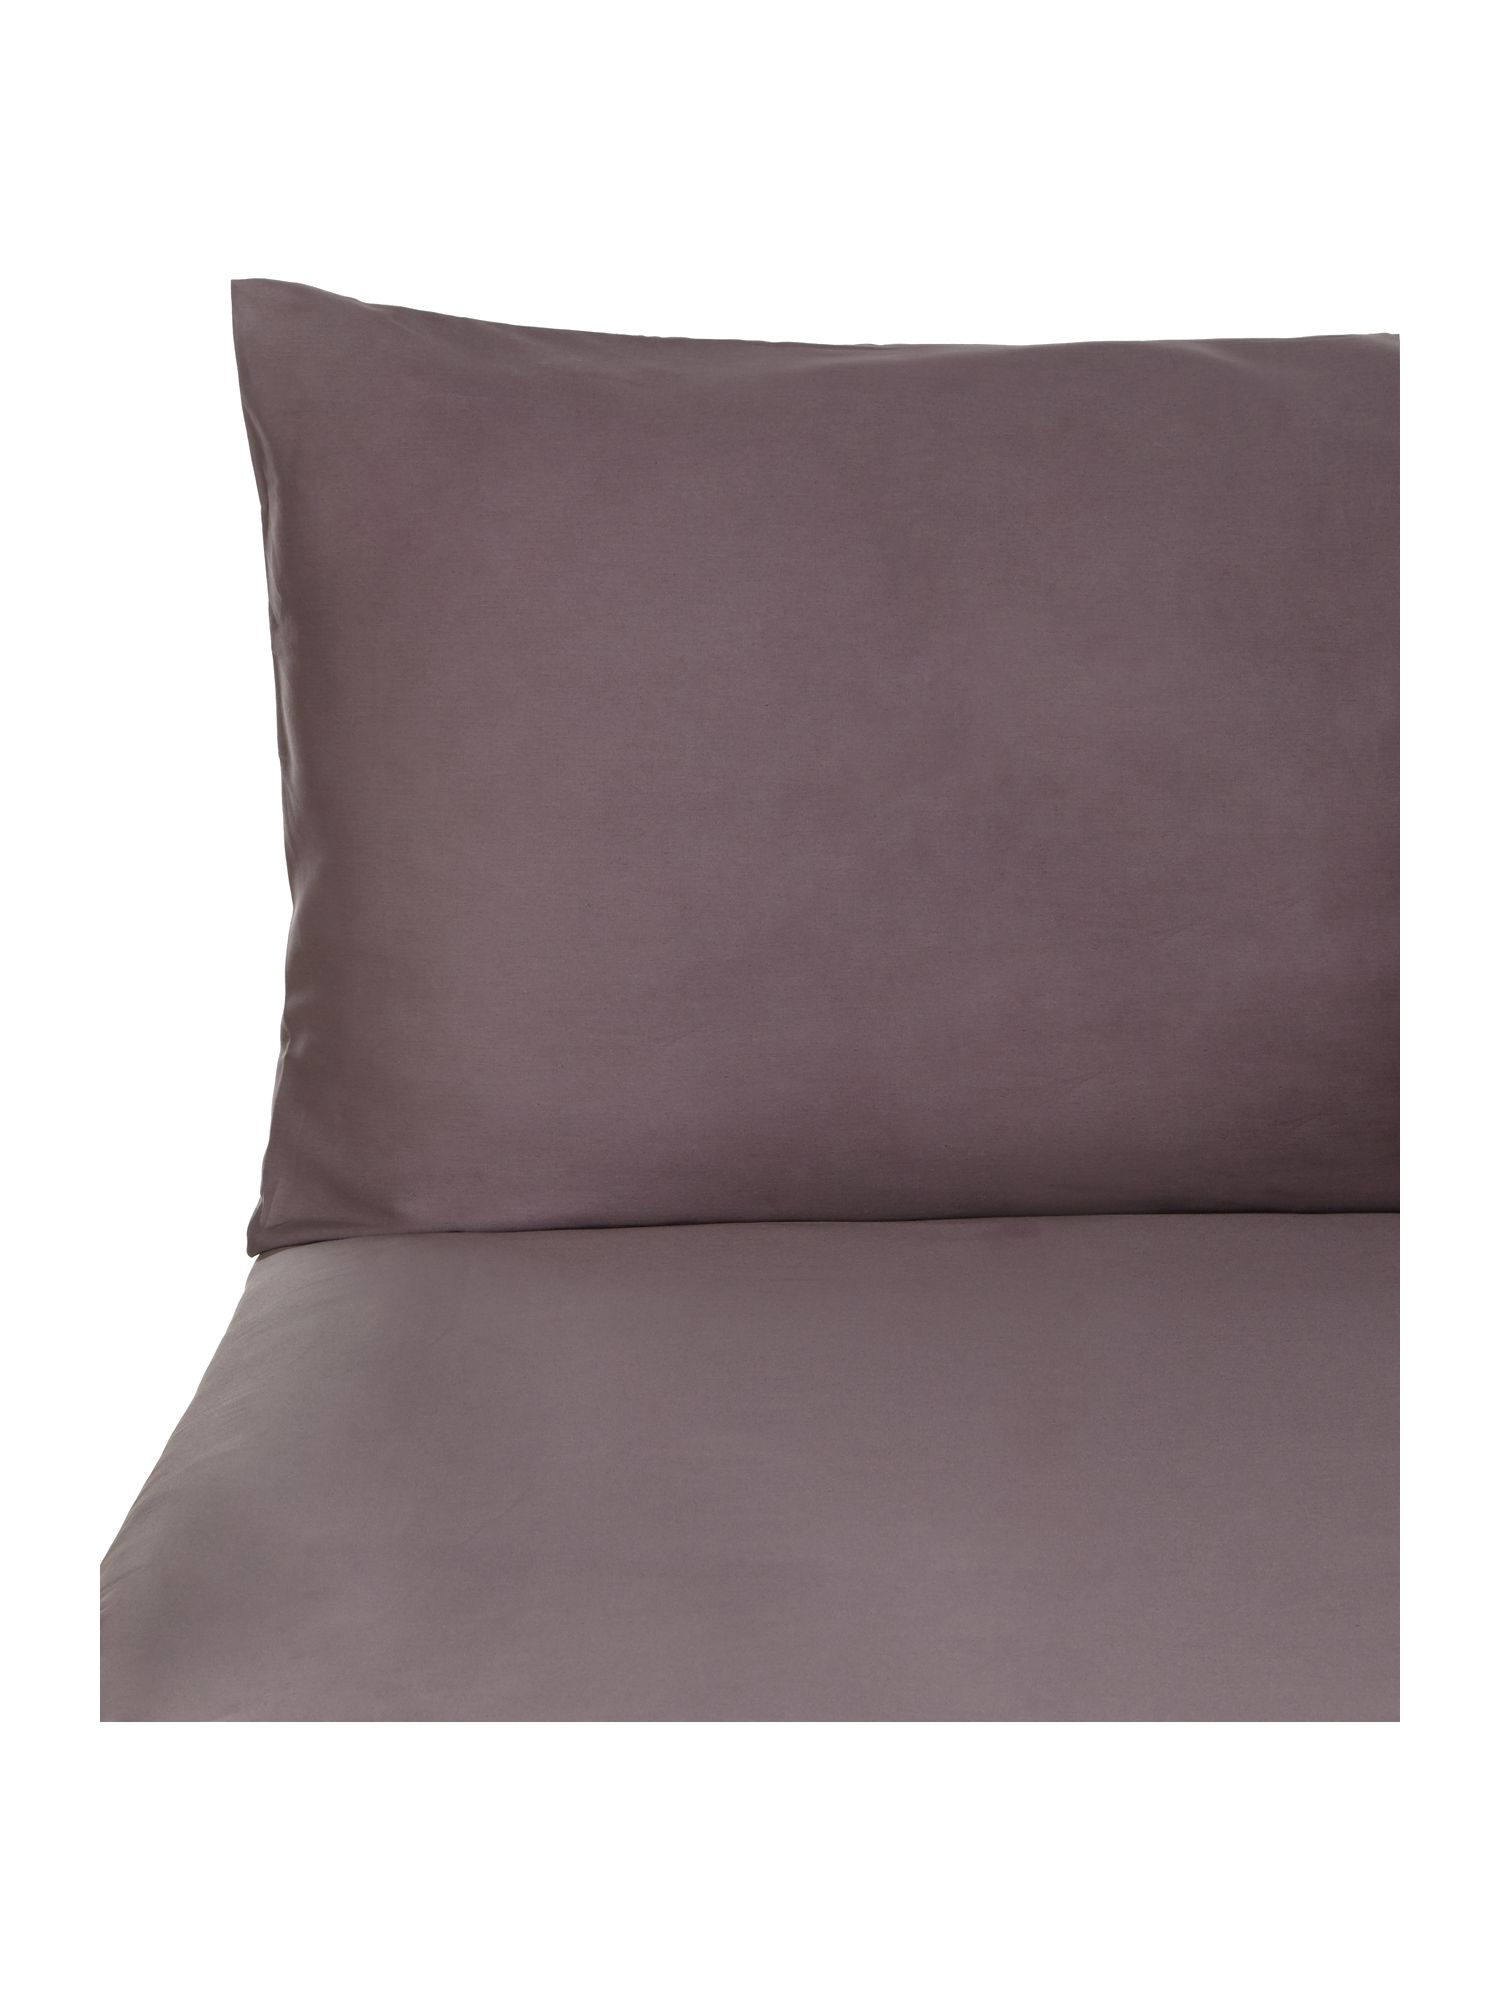 Graphite housewife pillowcase pair